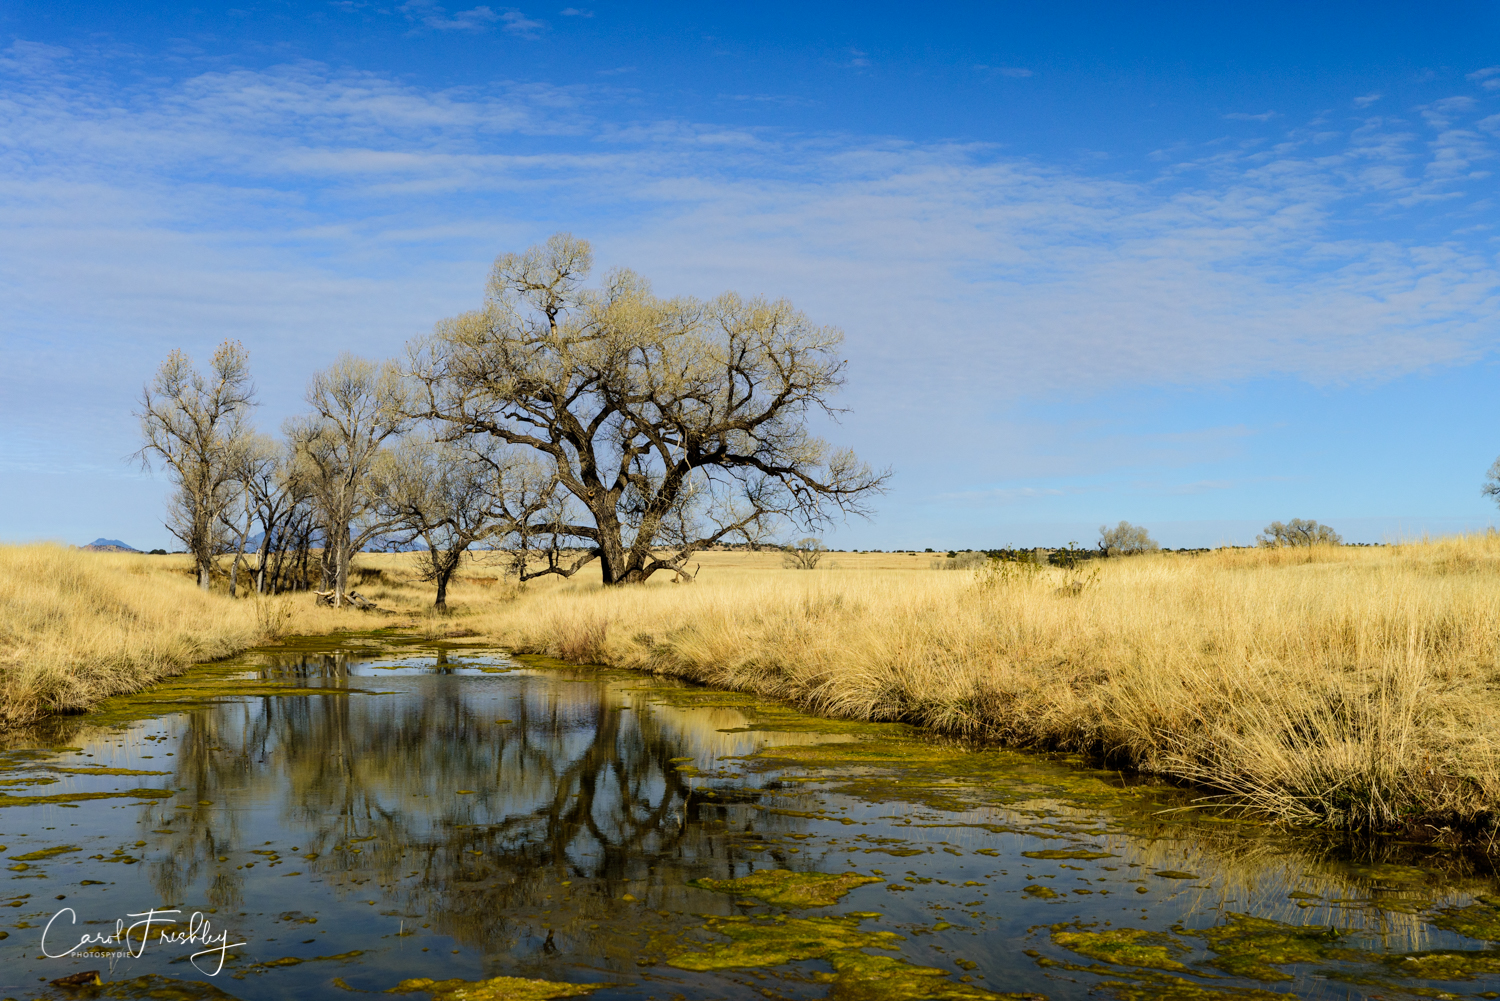 This is the San Pedro River. We spent quite a bit of time there trying to get creative reflections of the trees, grass and scum.